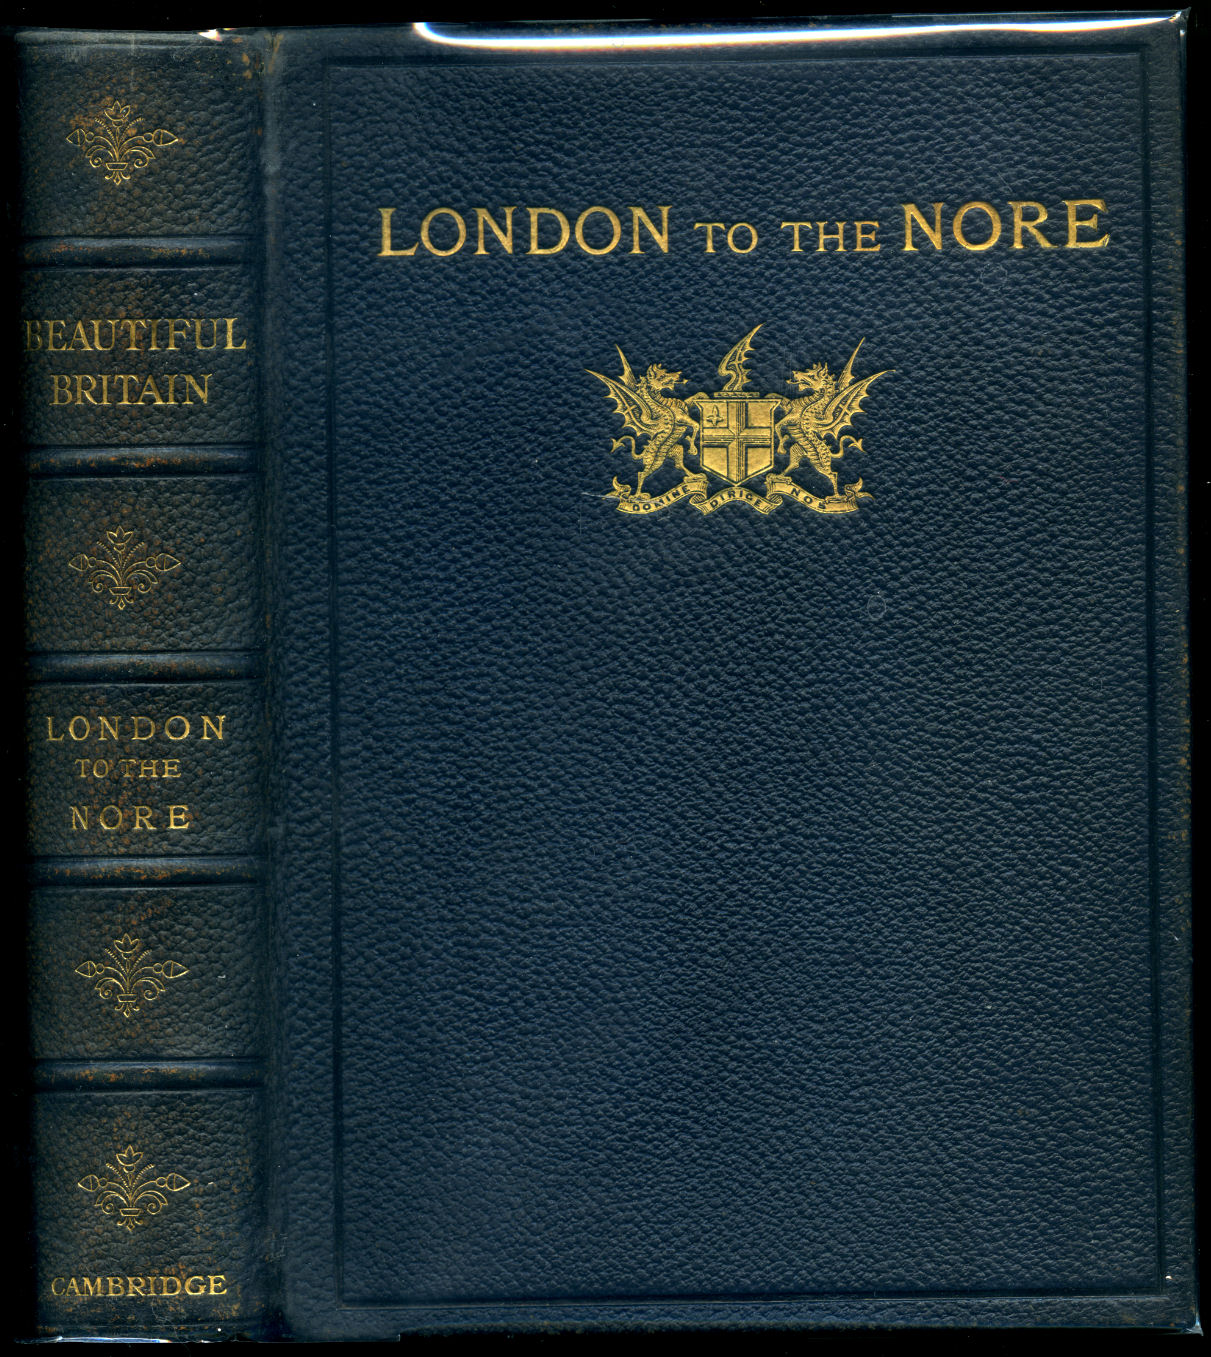 PAINTED W. L. WYLLIE AND DESCRIBED BY MARIAN AMY WYLLIE - Beautiful Britain | London to the Nore (Royal Canadian Limited Edition)